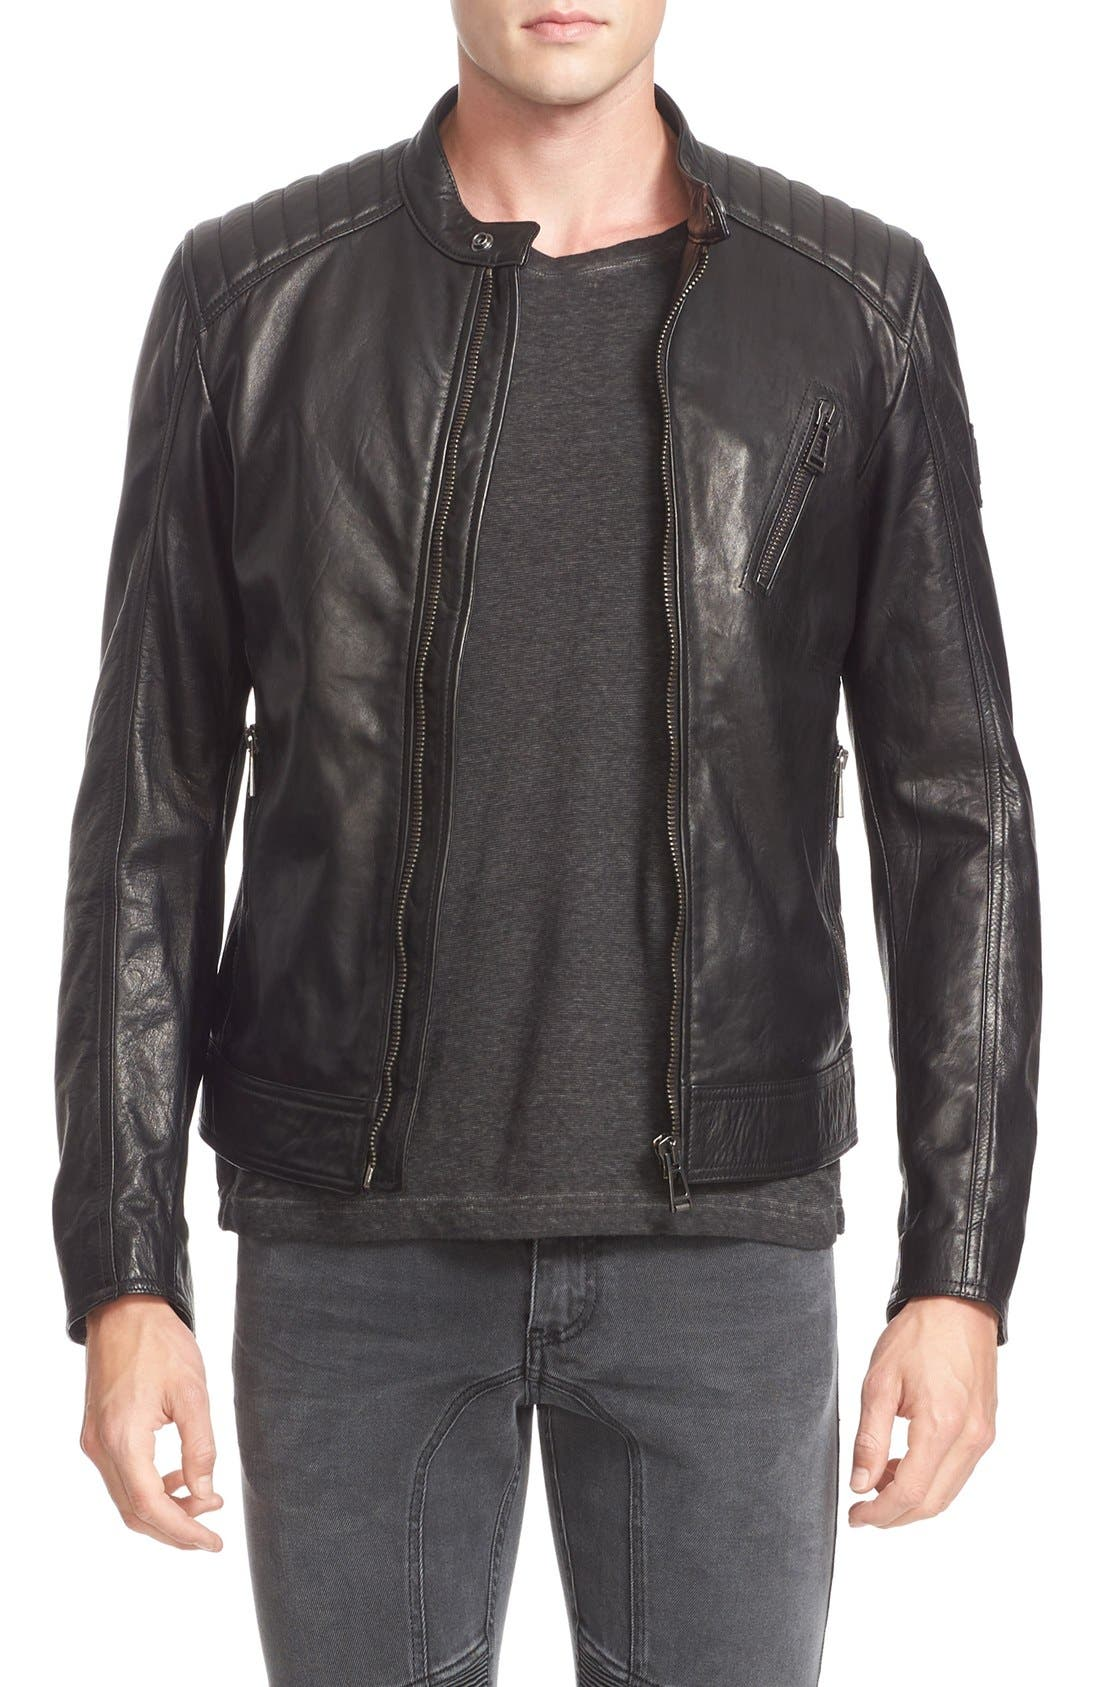 Hudson outerwear leather jackets